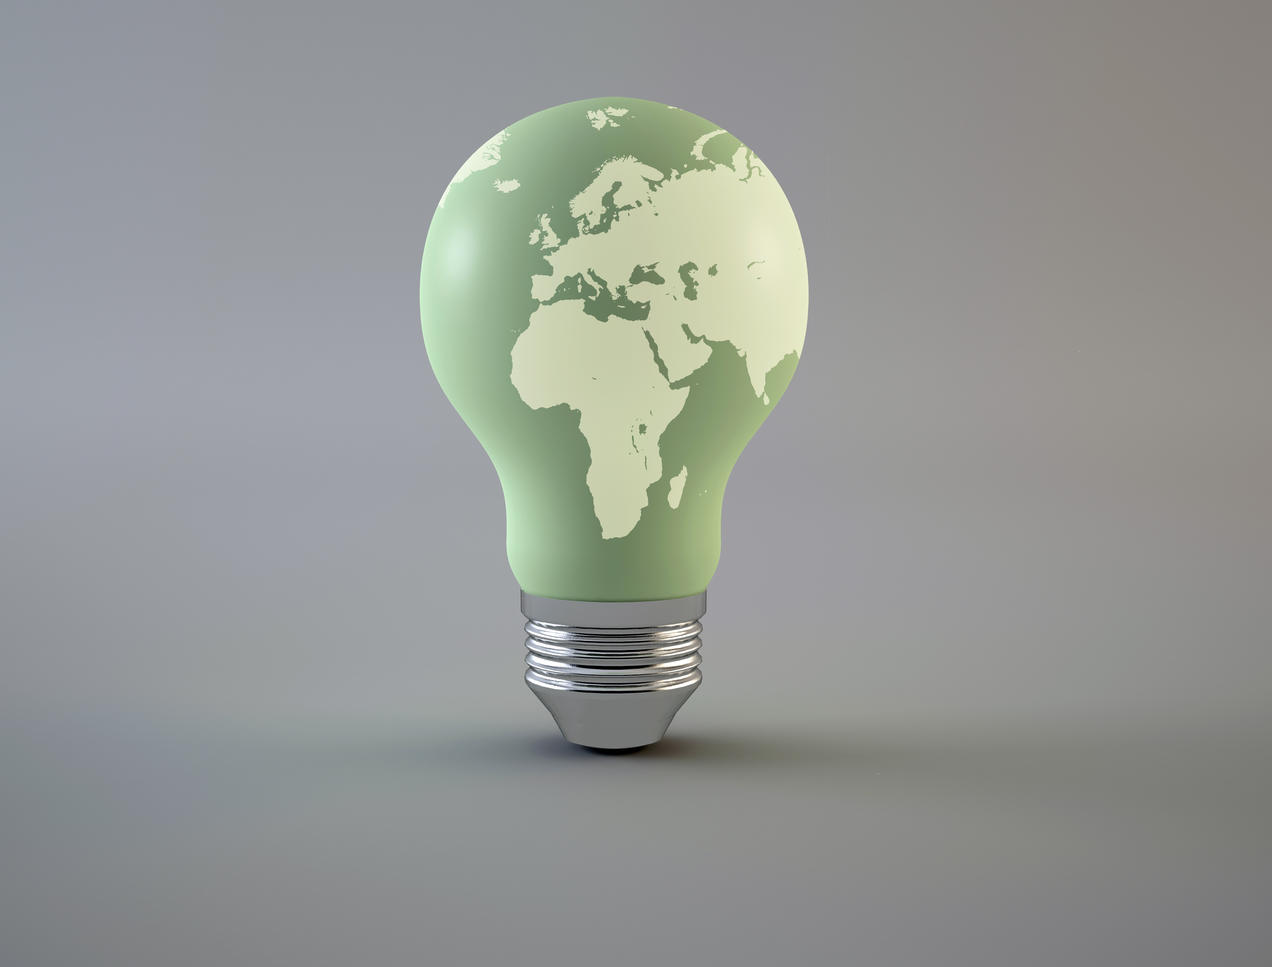 Led Lighting Could Save Developing Countries 40 Billion Yr